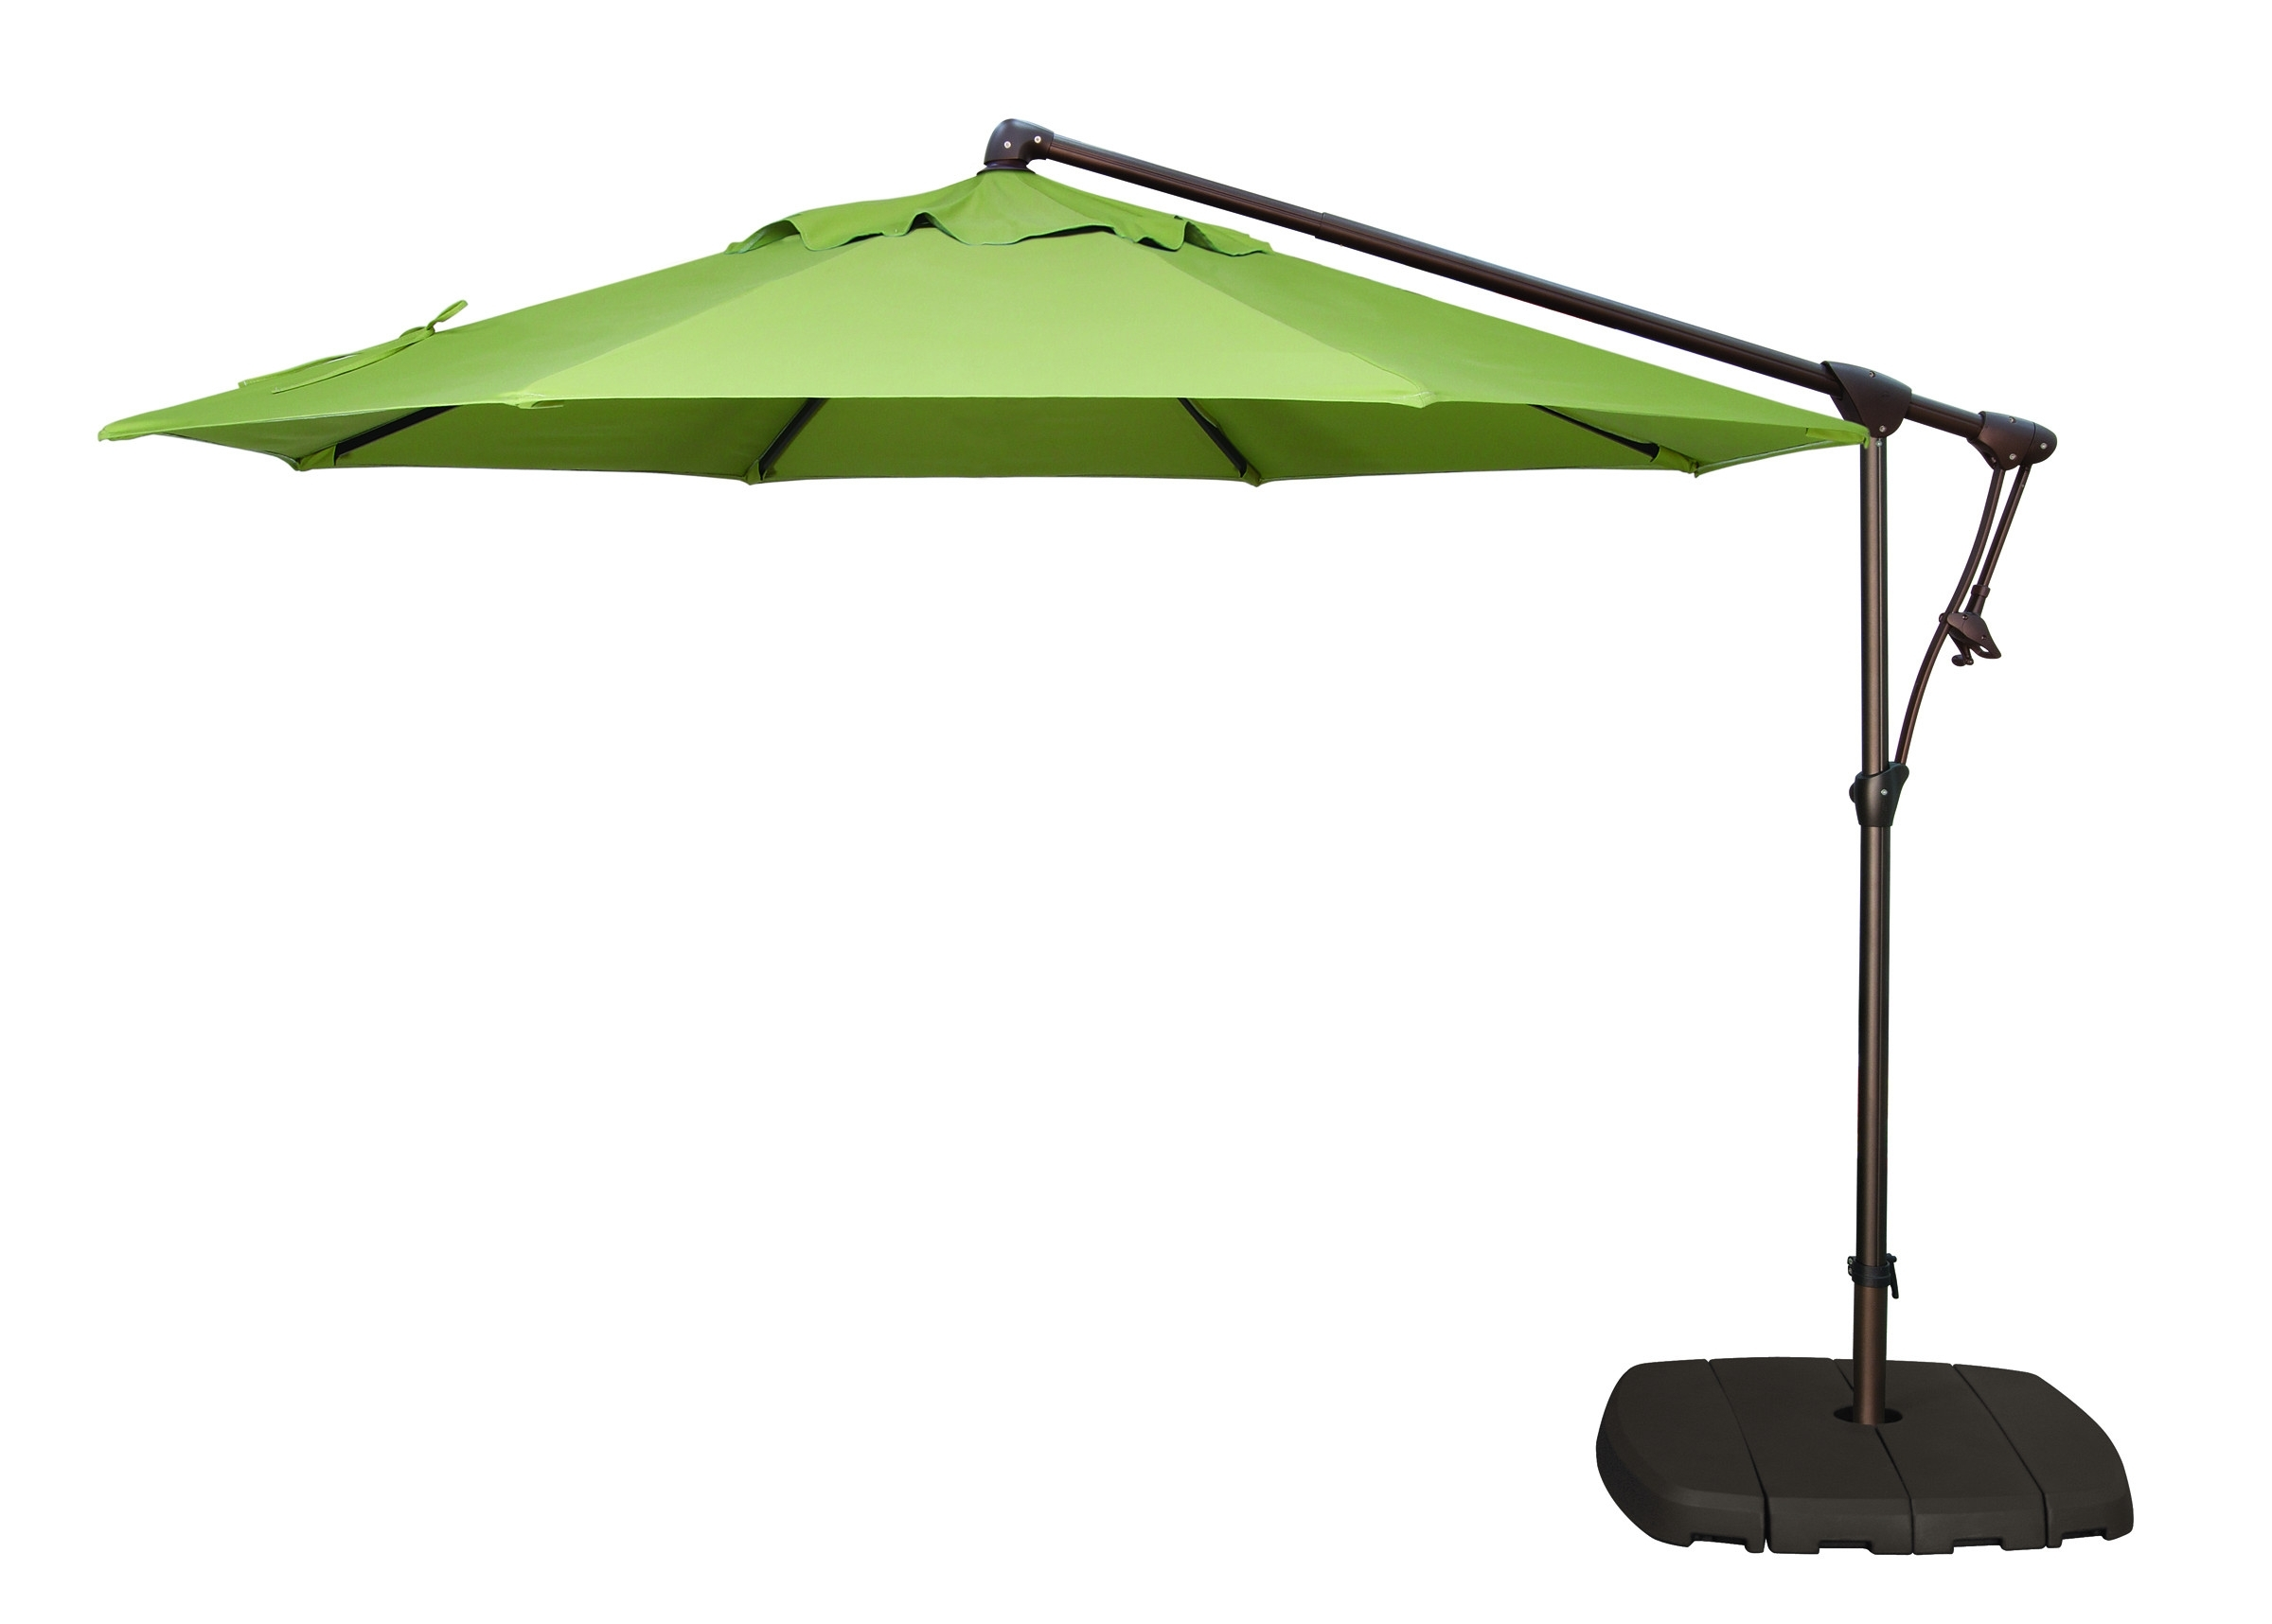 Popular Walmart Patio Umbrellas Pertaining To Walmart Patio Umbrellas Patios Outstanding Umbrella For Stunning (View 15 of 20)